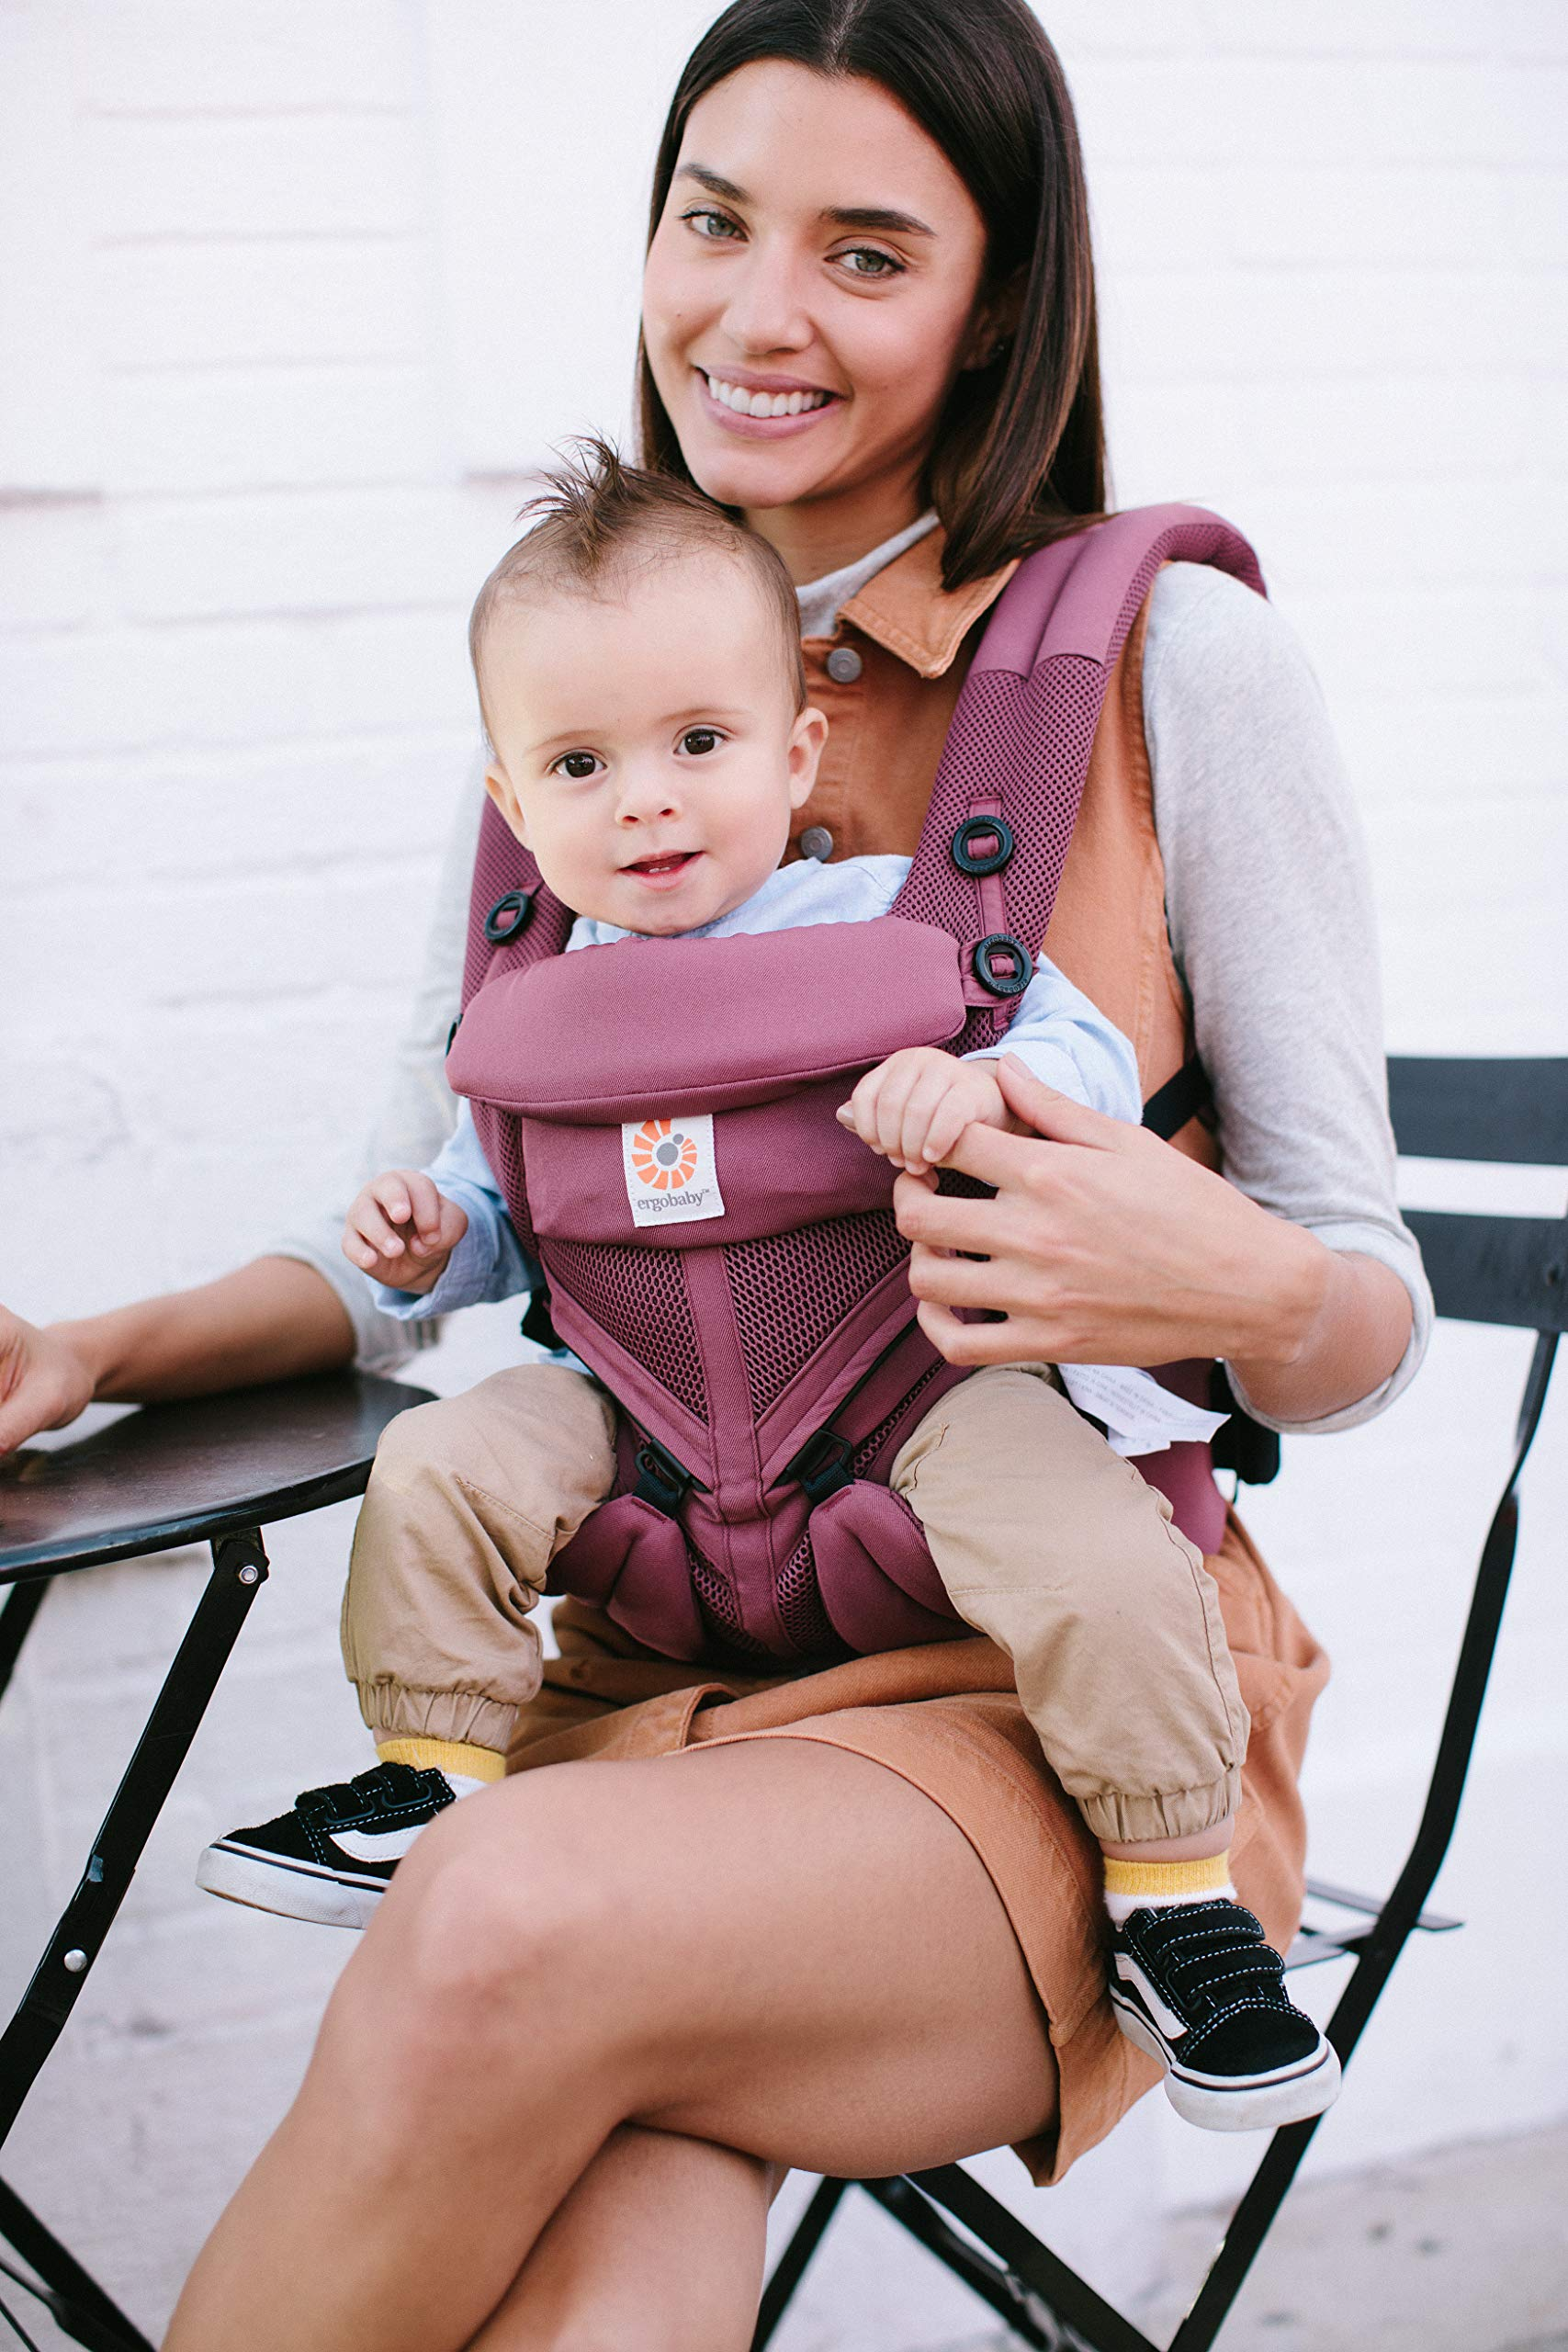 Ergobaby Baby Carrier for Newborn to Toddler, 4-Position Omni 360 Cool Air Plum, Breathable Ergonomic Child Carrier & Backpack Ergobaby BABY CARRIER FOR NEWBORN - Adapts to your growing baby from birth to toddler (7-45lbs). 4 carry positions: front-inward, back, hip, and front-outward. A Baby hood for sun protection (UPF 50+) & privacy for sleeping or breastfeeding is included. COMFORT - Exceptional lower back comfort with padded lumbar support waist belt & extra padded shoulder straps with the option to wear 2 ways: crossed or backpack style. Waist belt can be worn high or low to maximize comfort. COOL & BREATHABLE - Our Cool Air Mesh baby carriers are made with soft and durable mesh fabric that provides our renowned ergonomic support for baby while allowing for ultimate breathability and airflow 3